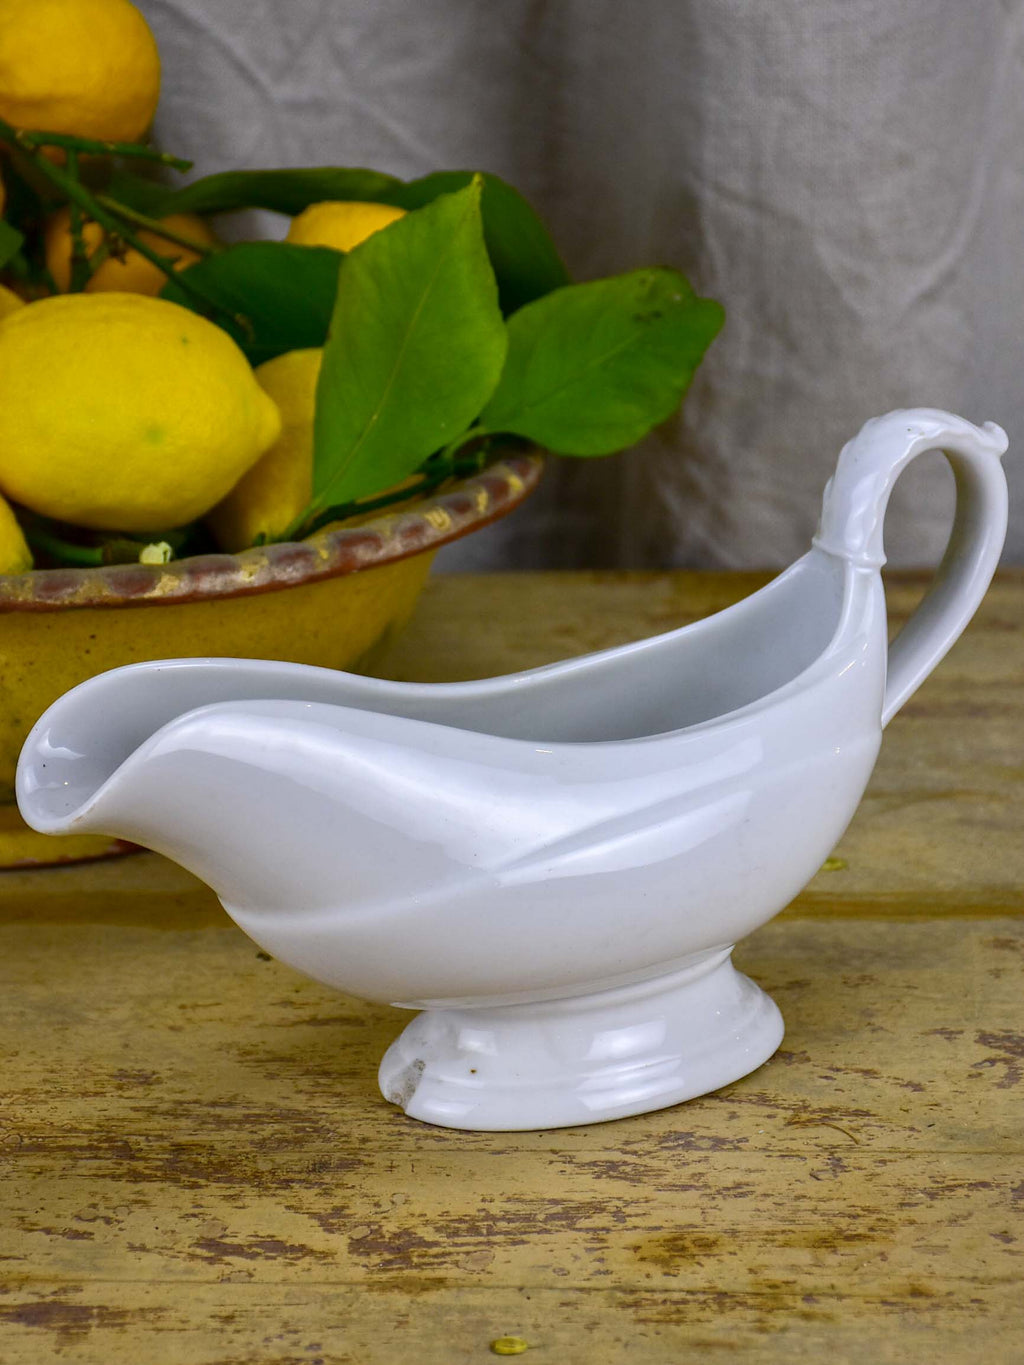 Antique French stoneware gravy boat - white